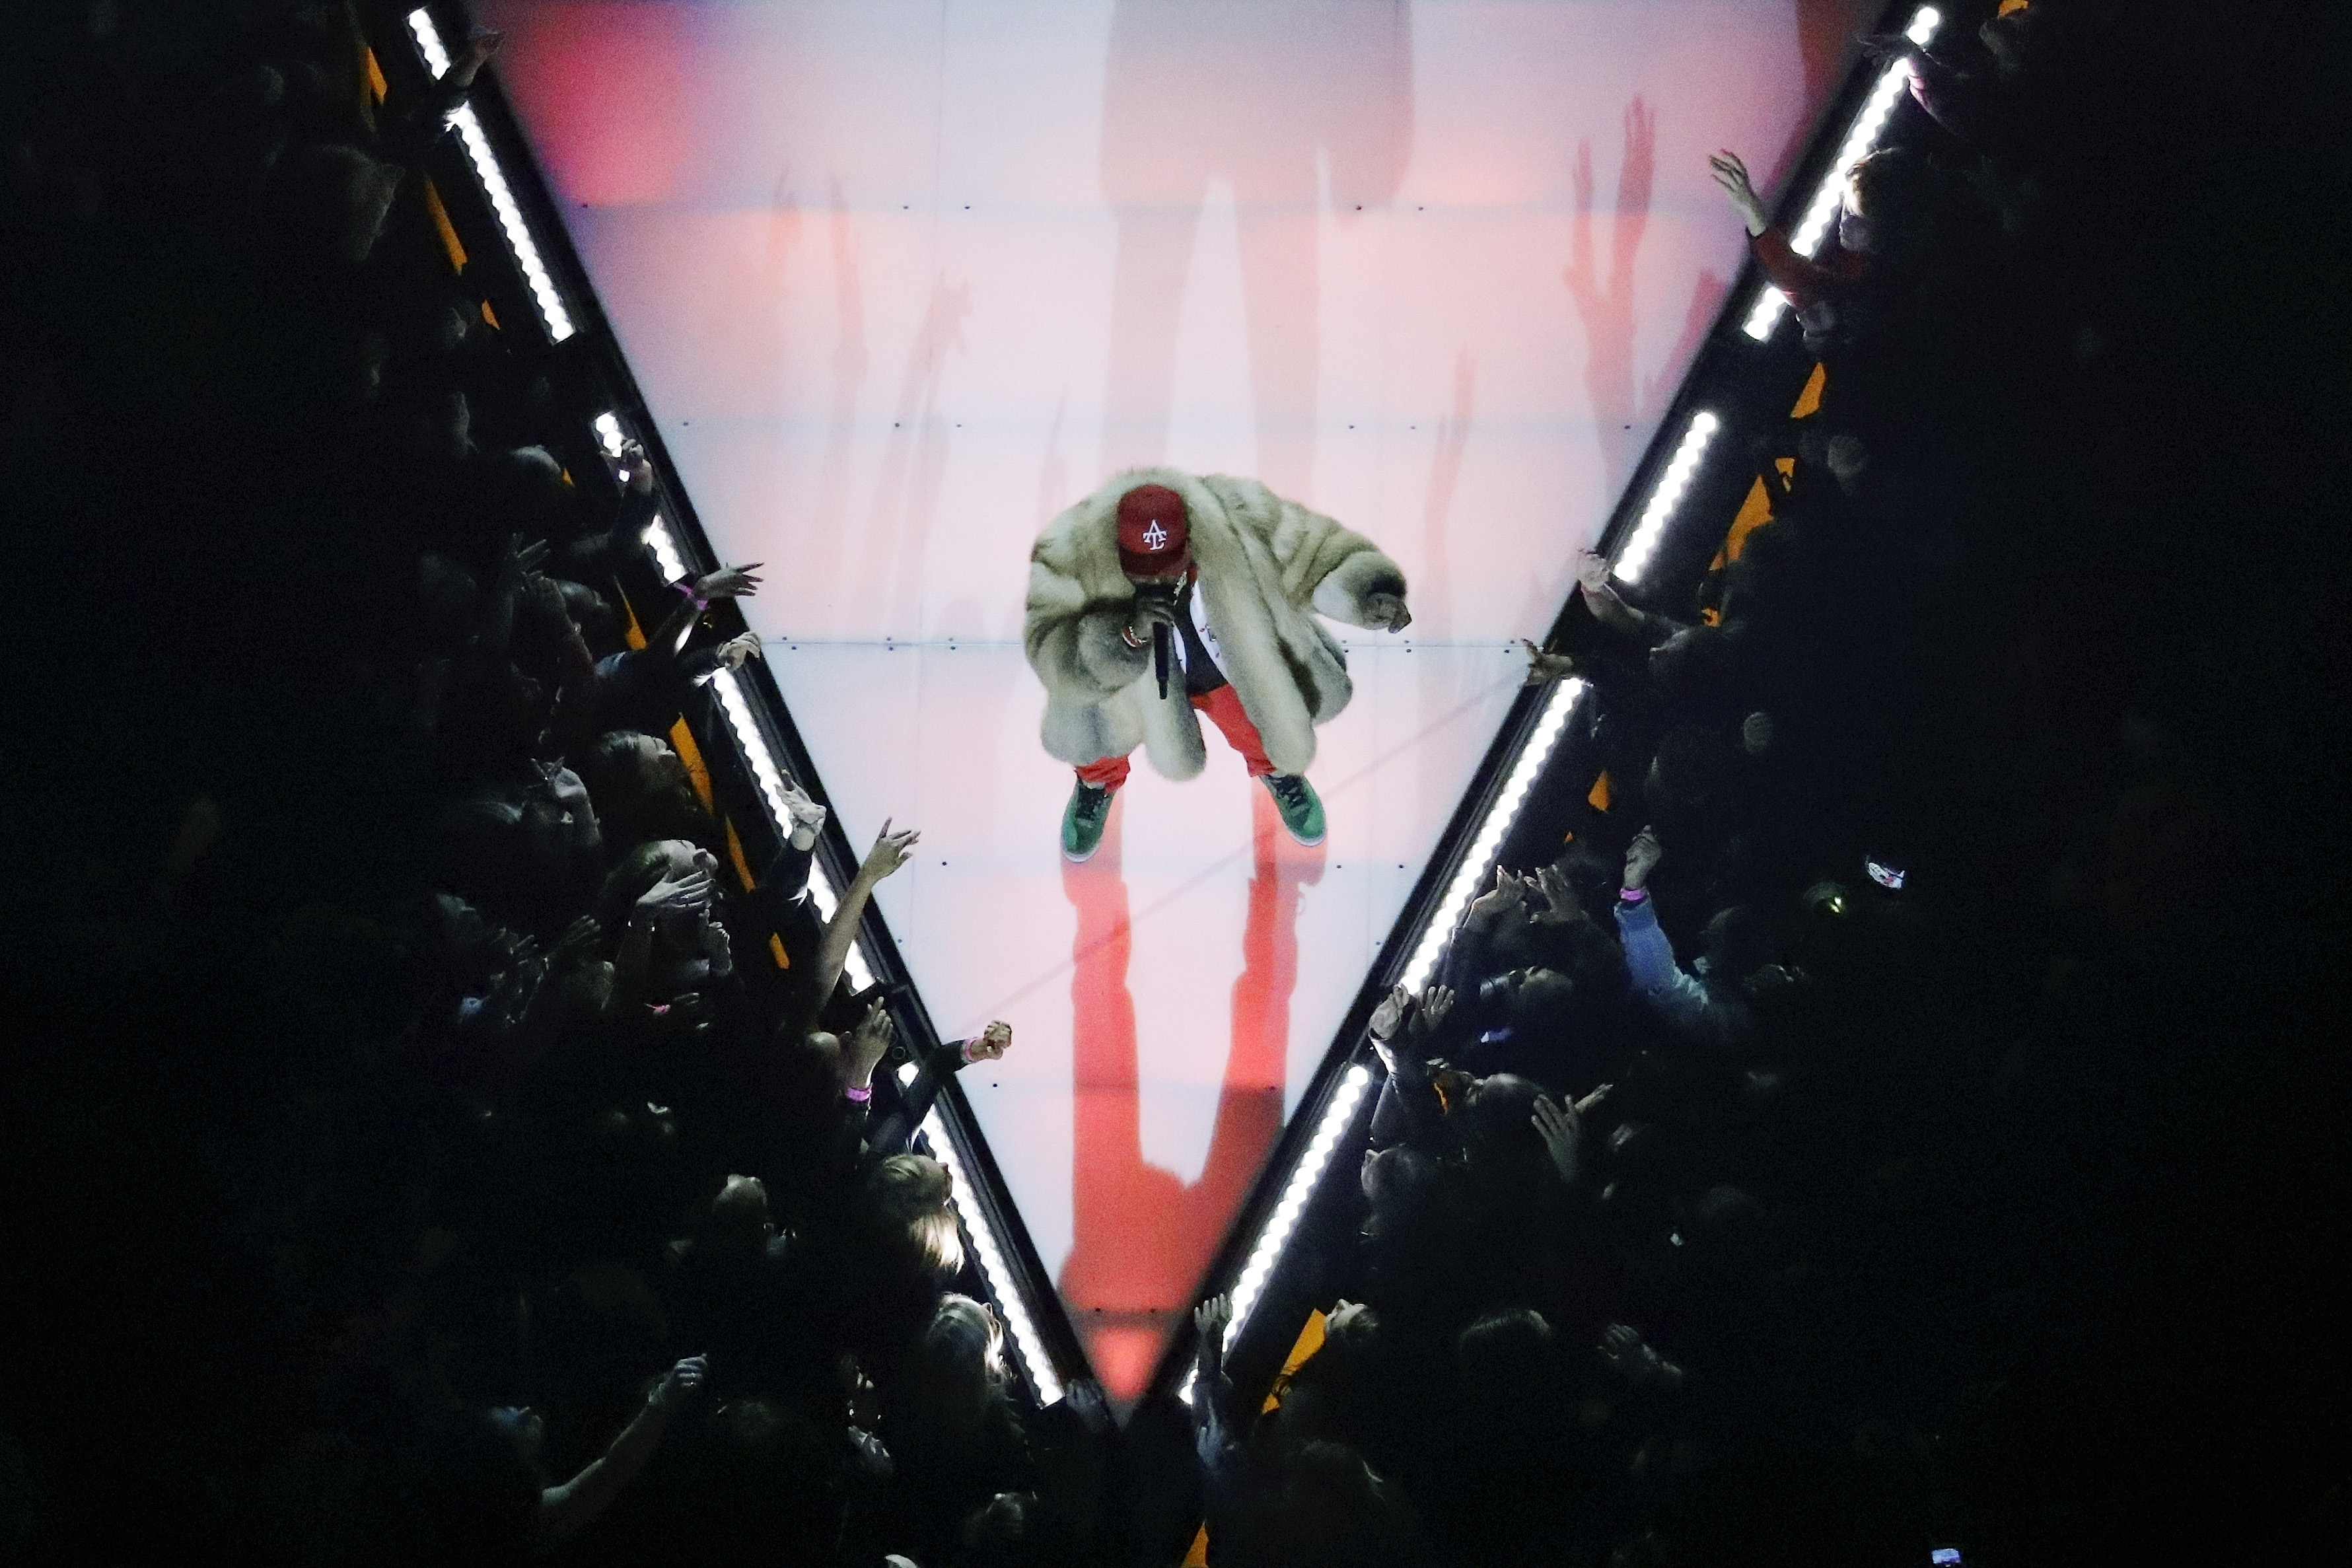 "<div class=""meta image-caption""><div class=""origin-logo origin-image ap""><span>AP</span></div><span class=""caption-text"">Big Boi performs during halftime of the NFL Super Bowl 53 football game between the Los Angeles Rams and the New England Patriots Sunday, Feb. 3, 2019, in Atlanta. (AP Photo/Morry Gash)</span></div>"